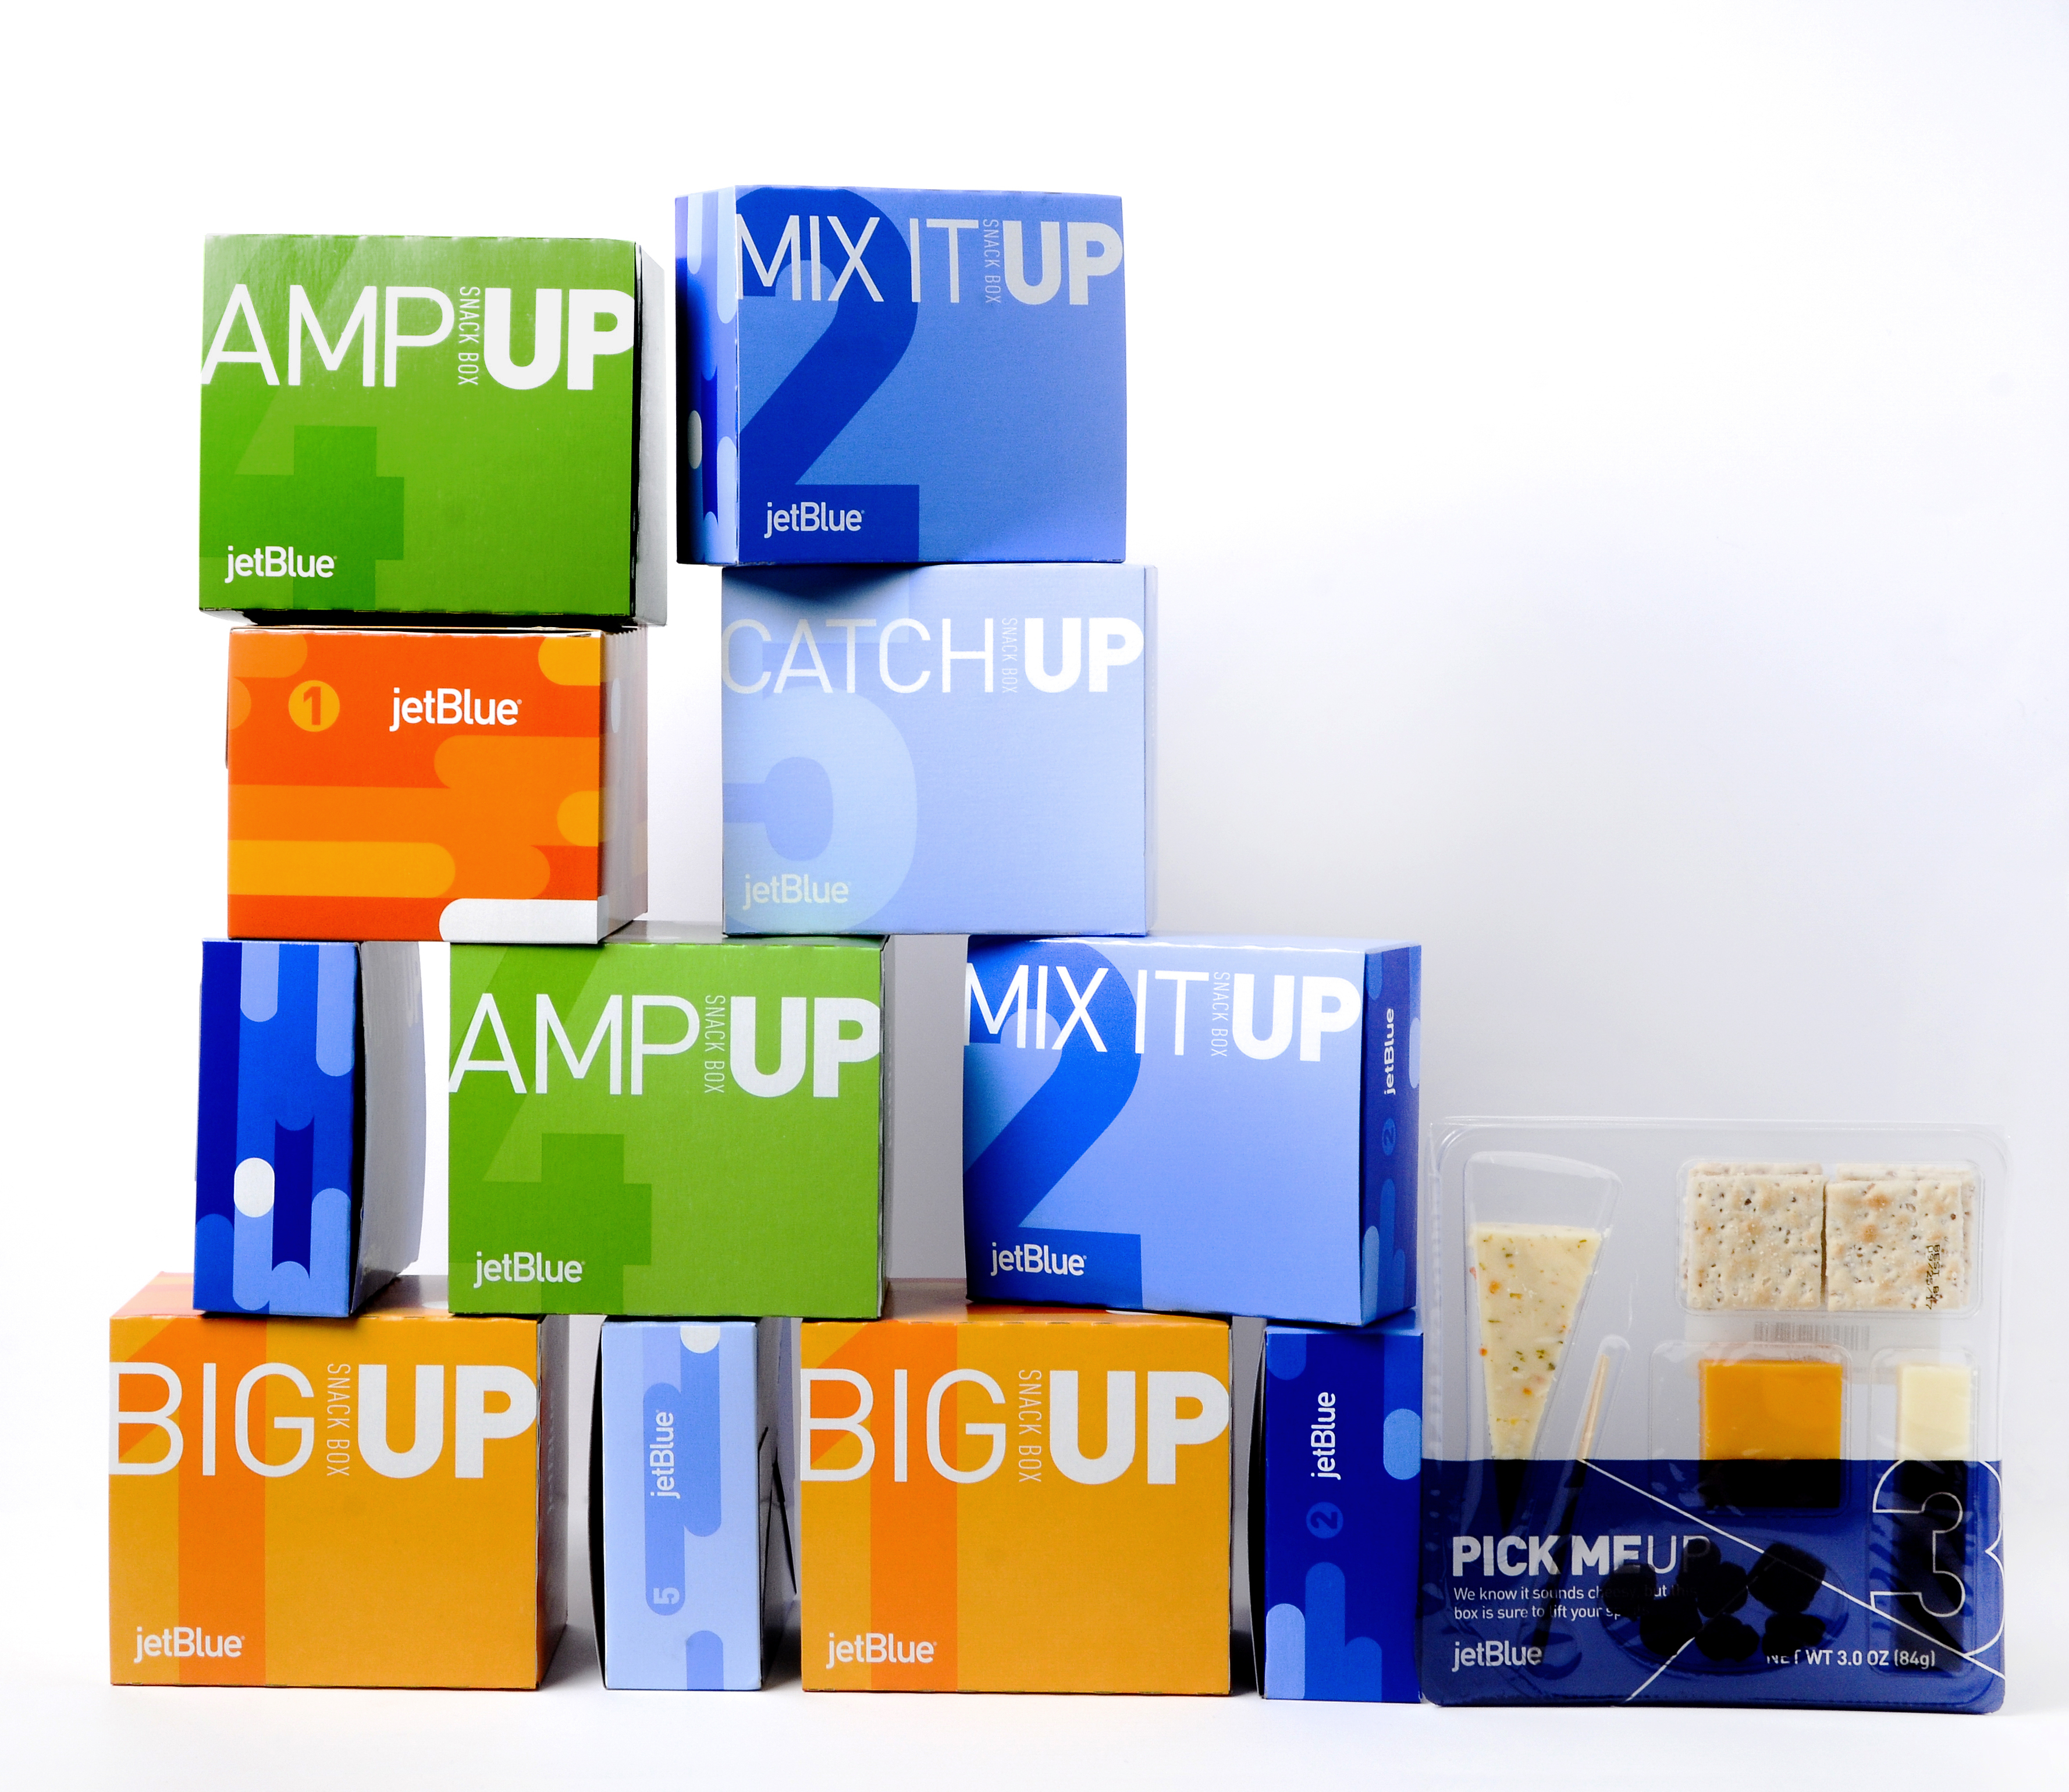 JetBlue's new EatUp Box collection: AmpUp, MixItUp, BigUp, CatchUp (Photo: Business Wire)